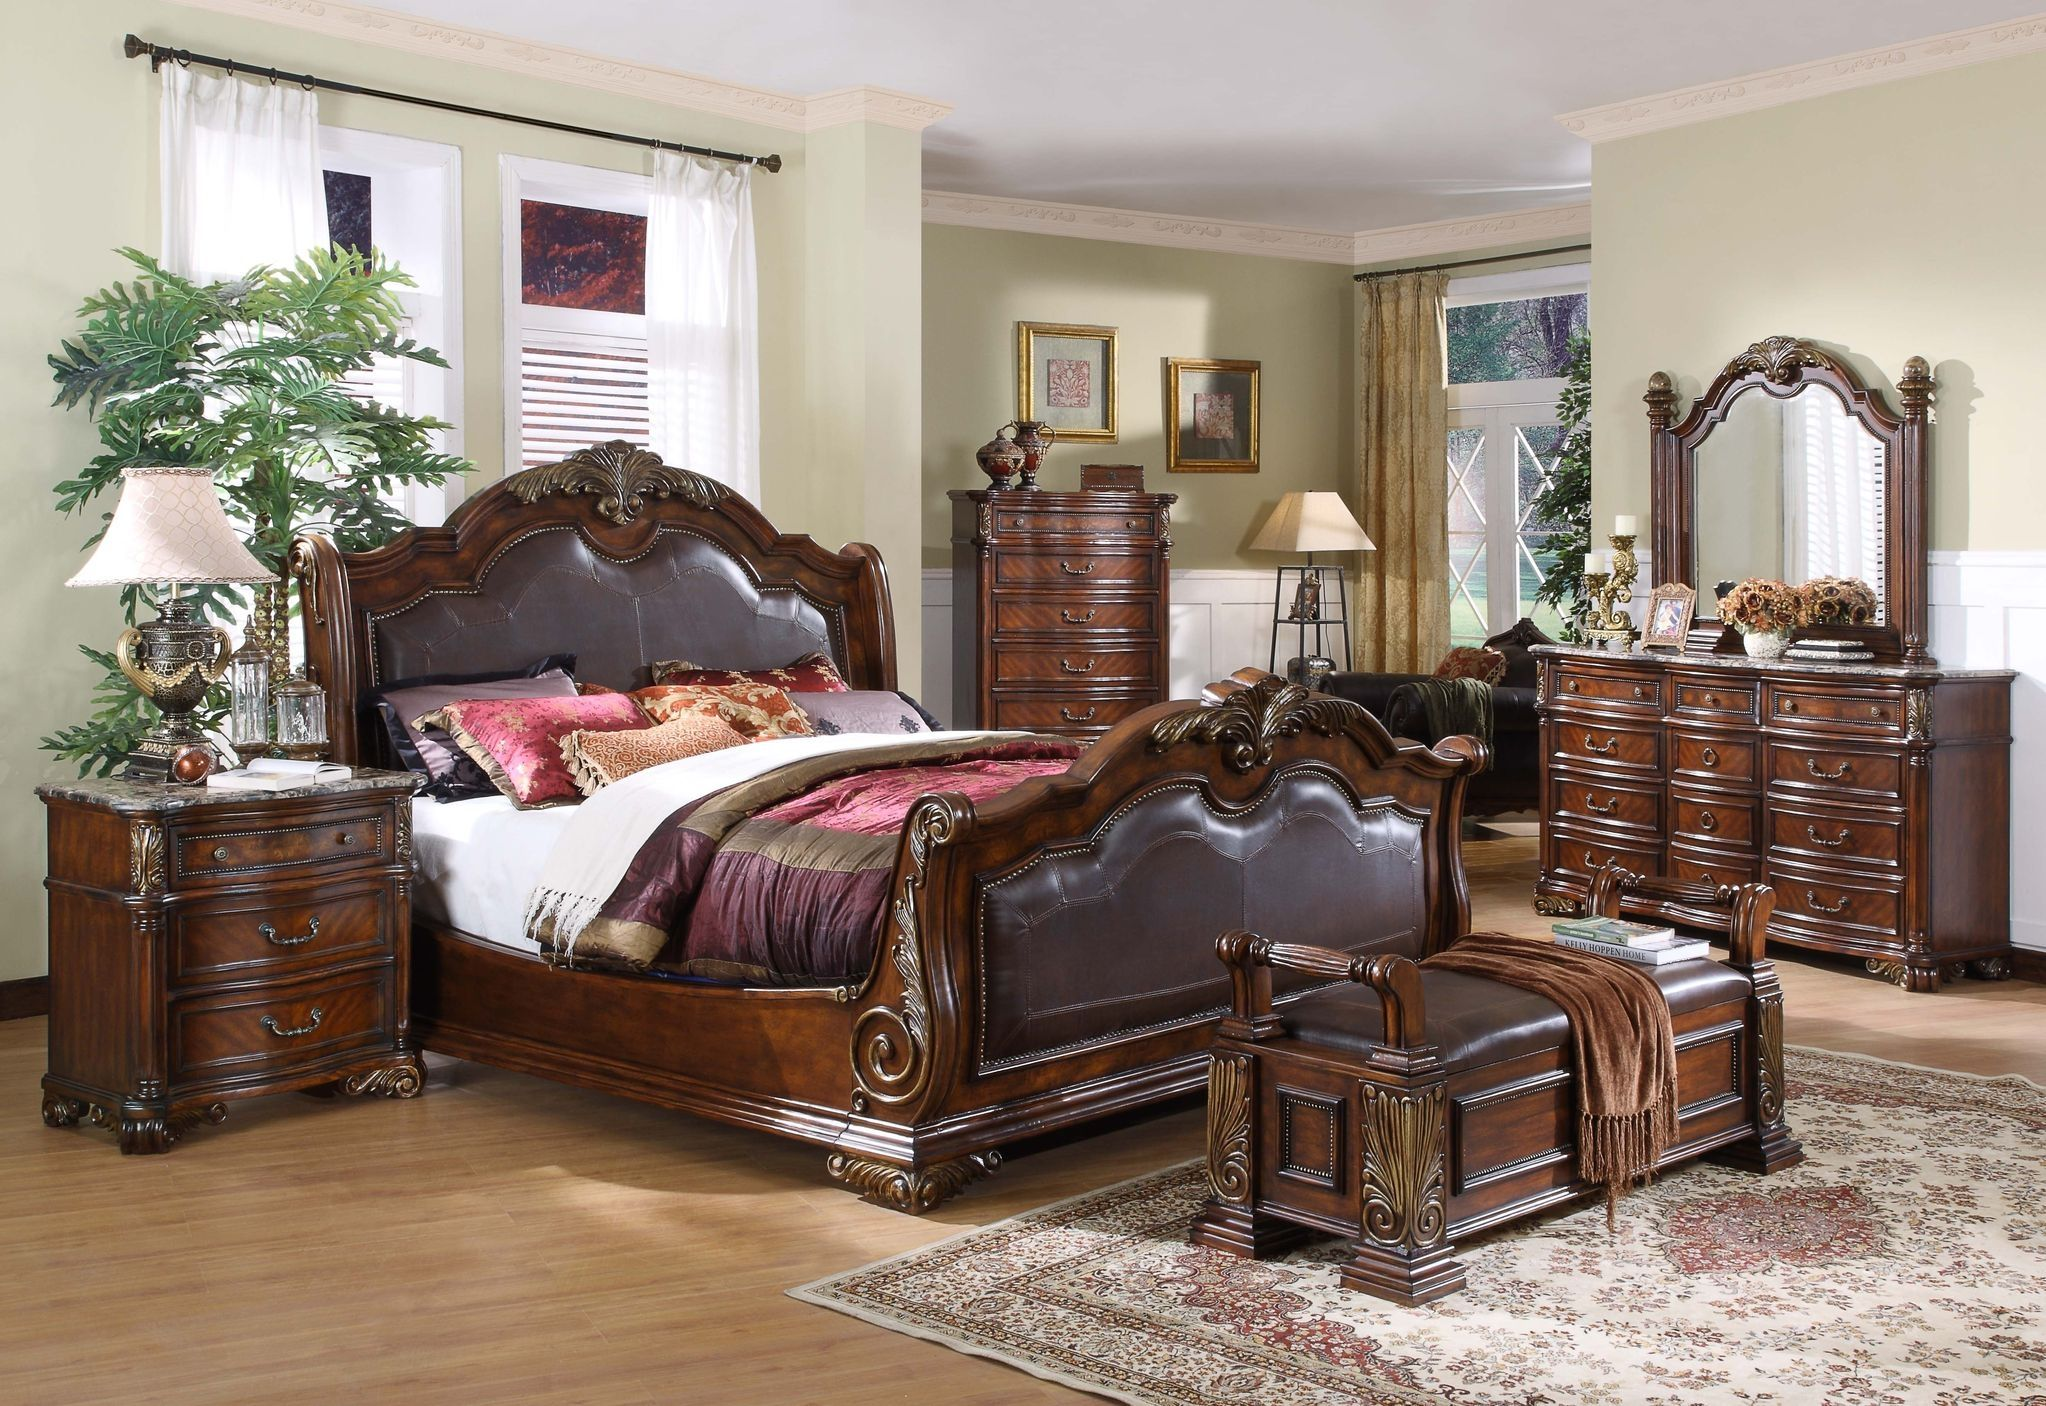 bedroom chair clearance chairs hanging from ceiling thomasville furniture hom intended for to get your boudoir cozy and